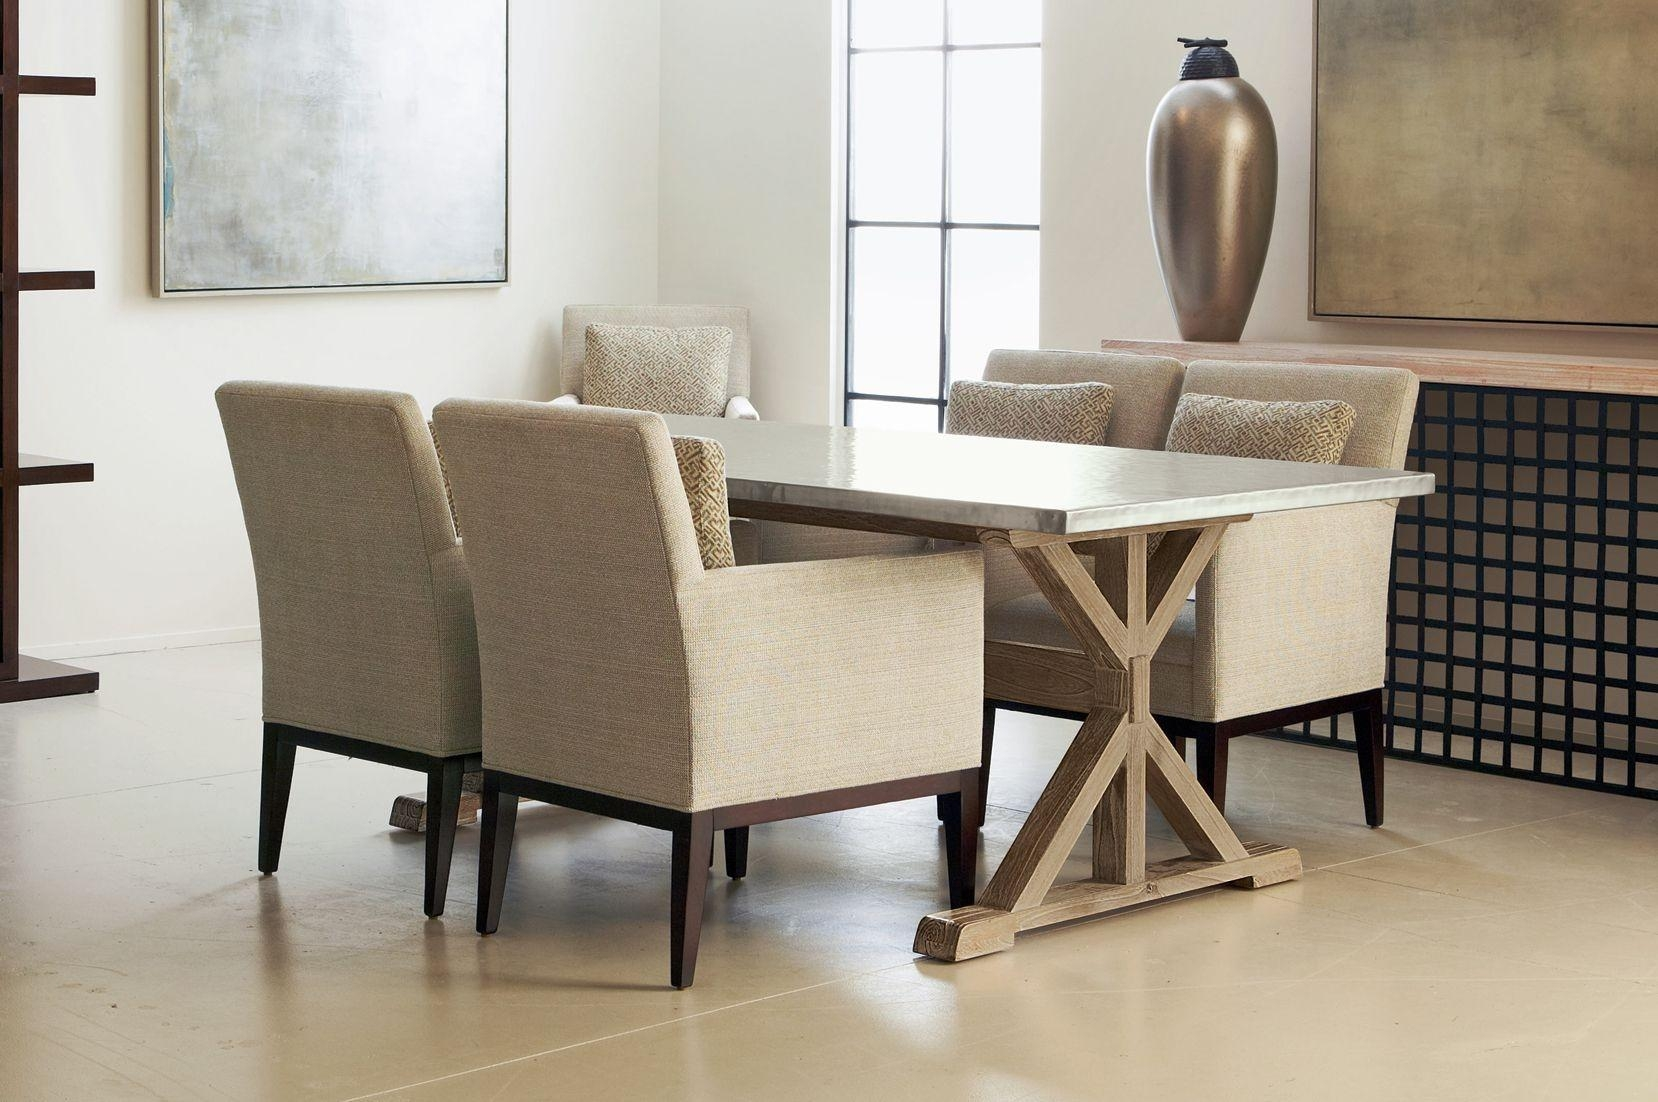 Chair 28 Comfortable Dining Room Sets Fascinating Chairs Upholster With Regard To Dining Sofa Chairs (Image 8 of 20)